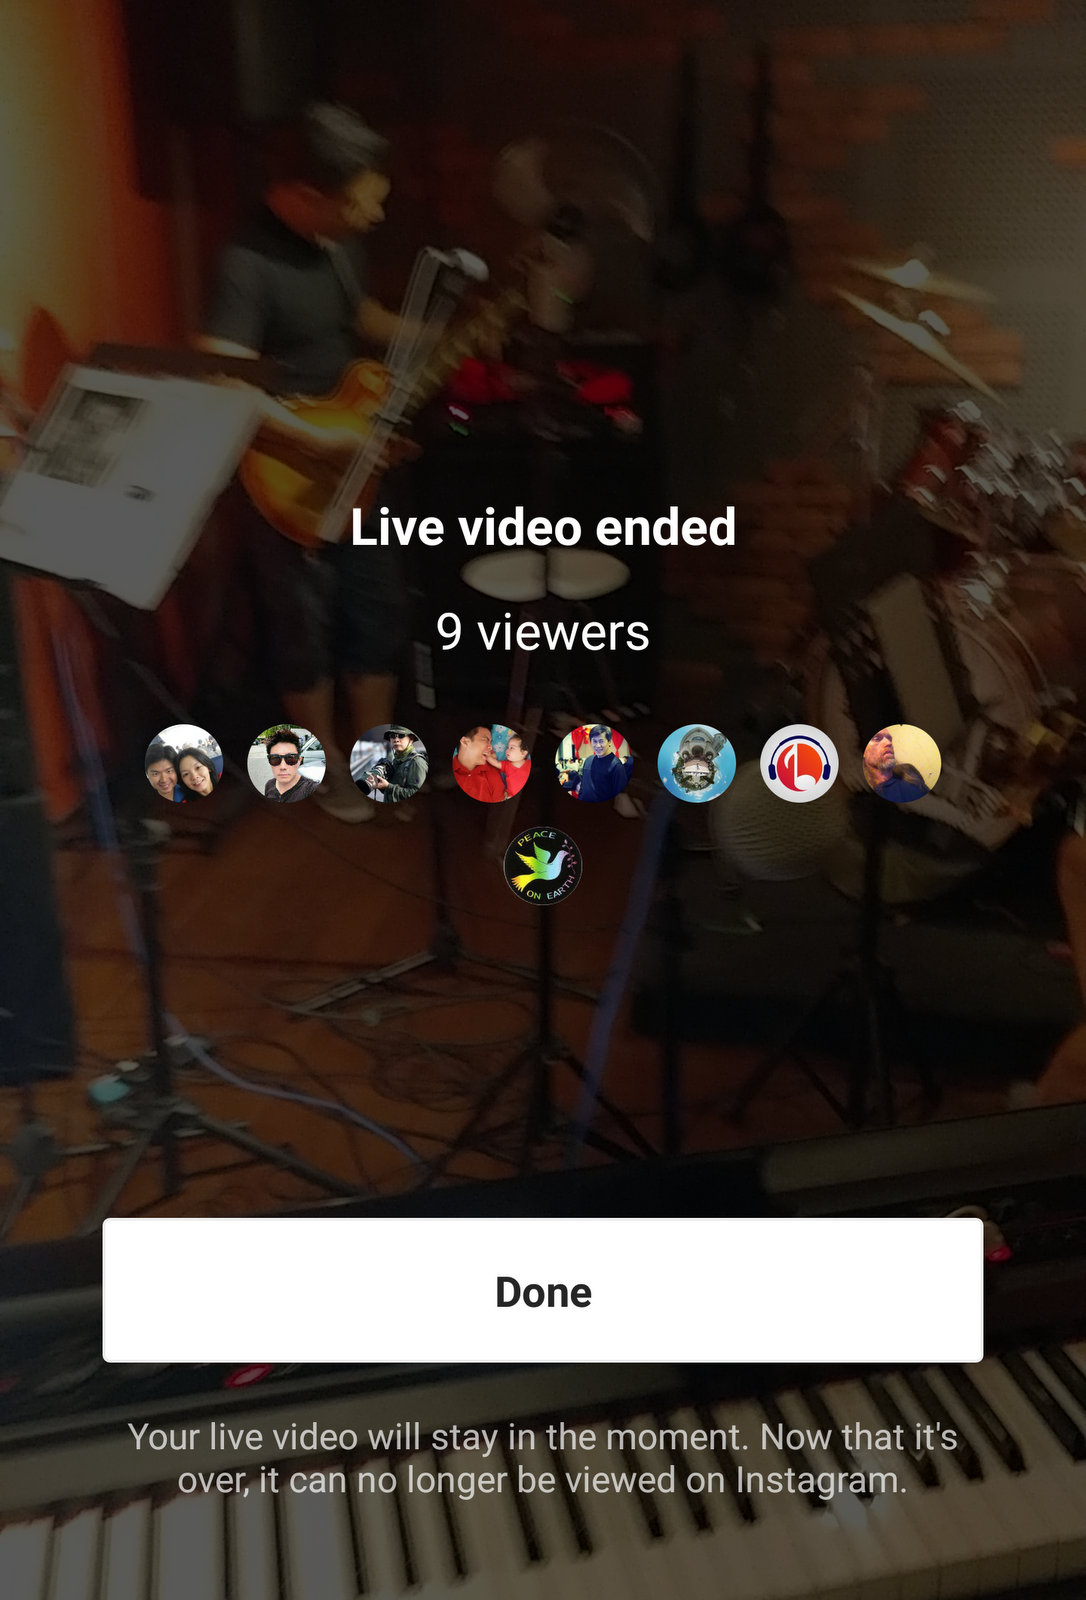 Instagram Stories Live is gone after it's ended